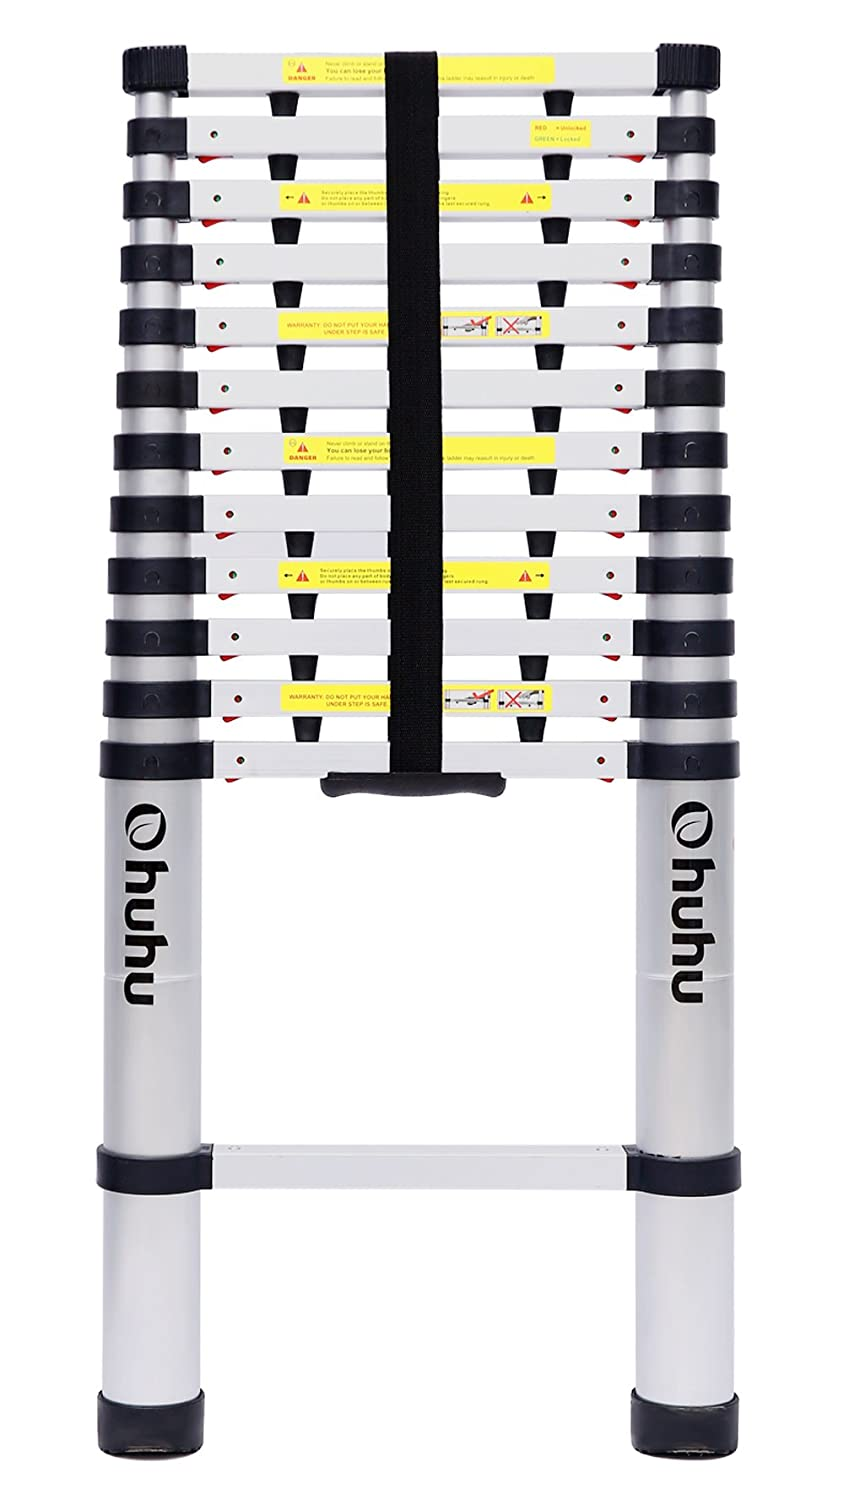 Ohuhu Telescopic Extension Ladder Black Friday Deals 2019